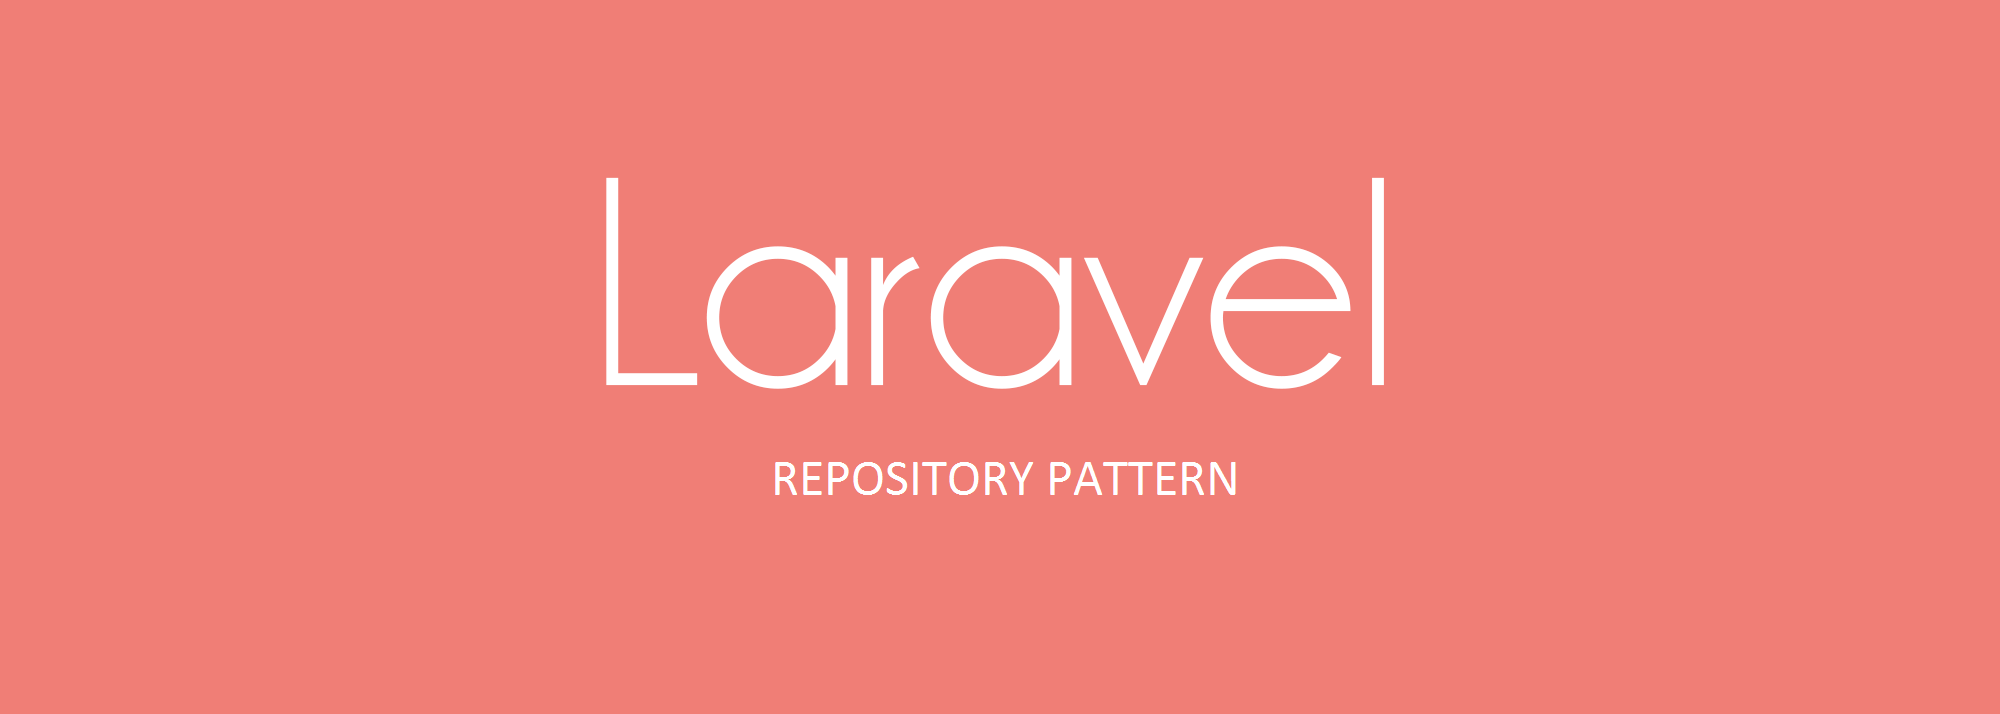 Why the Repository Pattern is Often Misunderstood in the